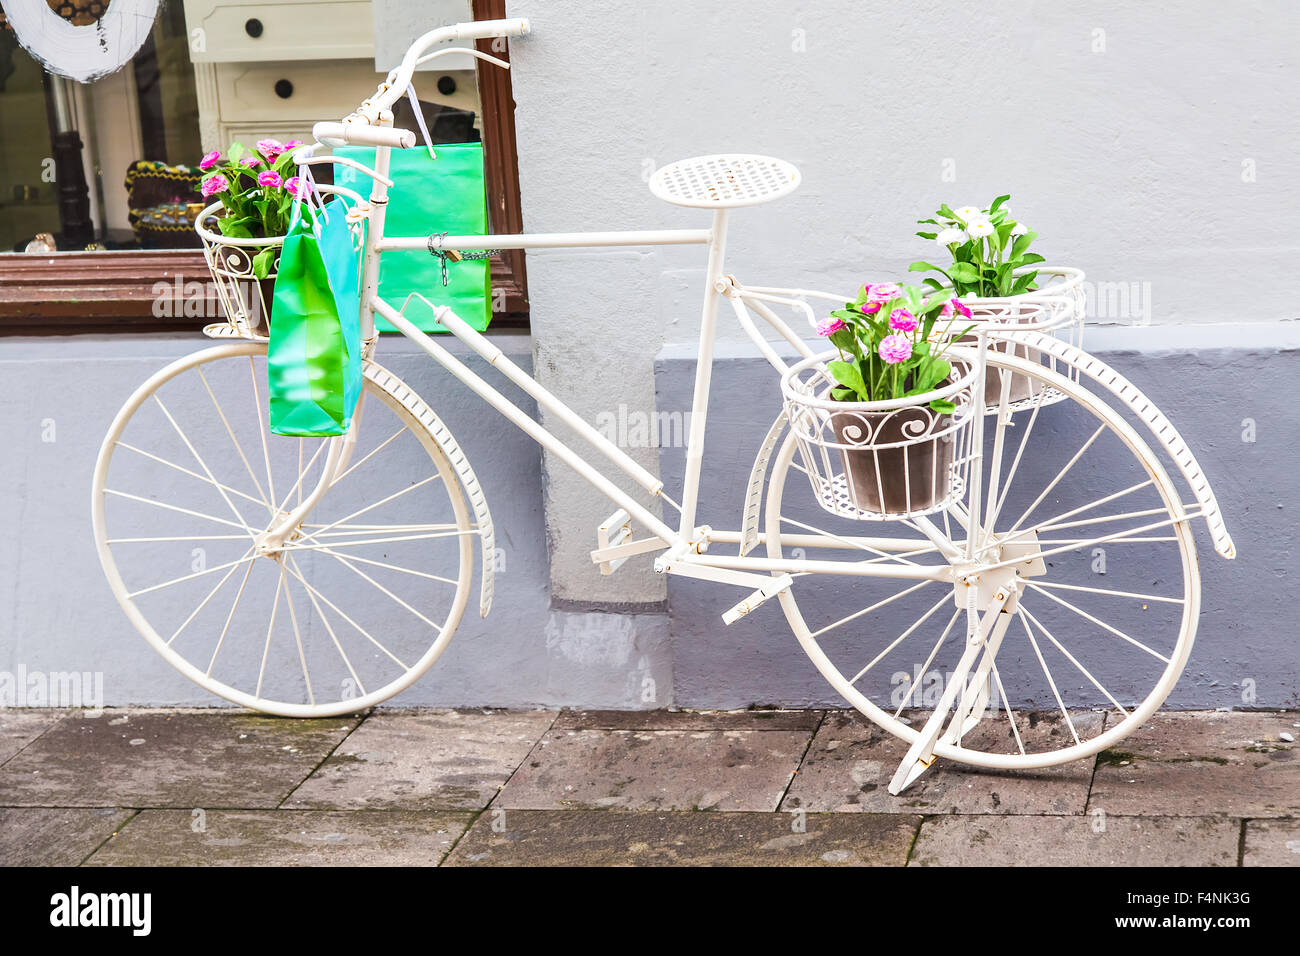 bicycle decorative in front of the flower shop. bicycle decorative in front of the flower shop Stock Photo